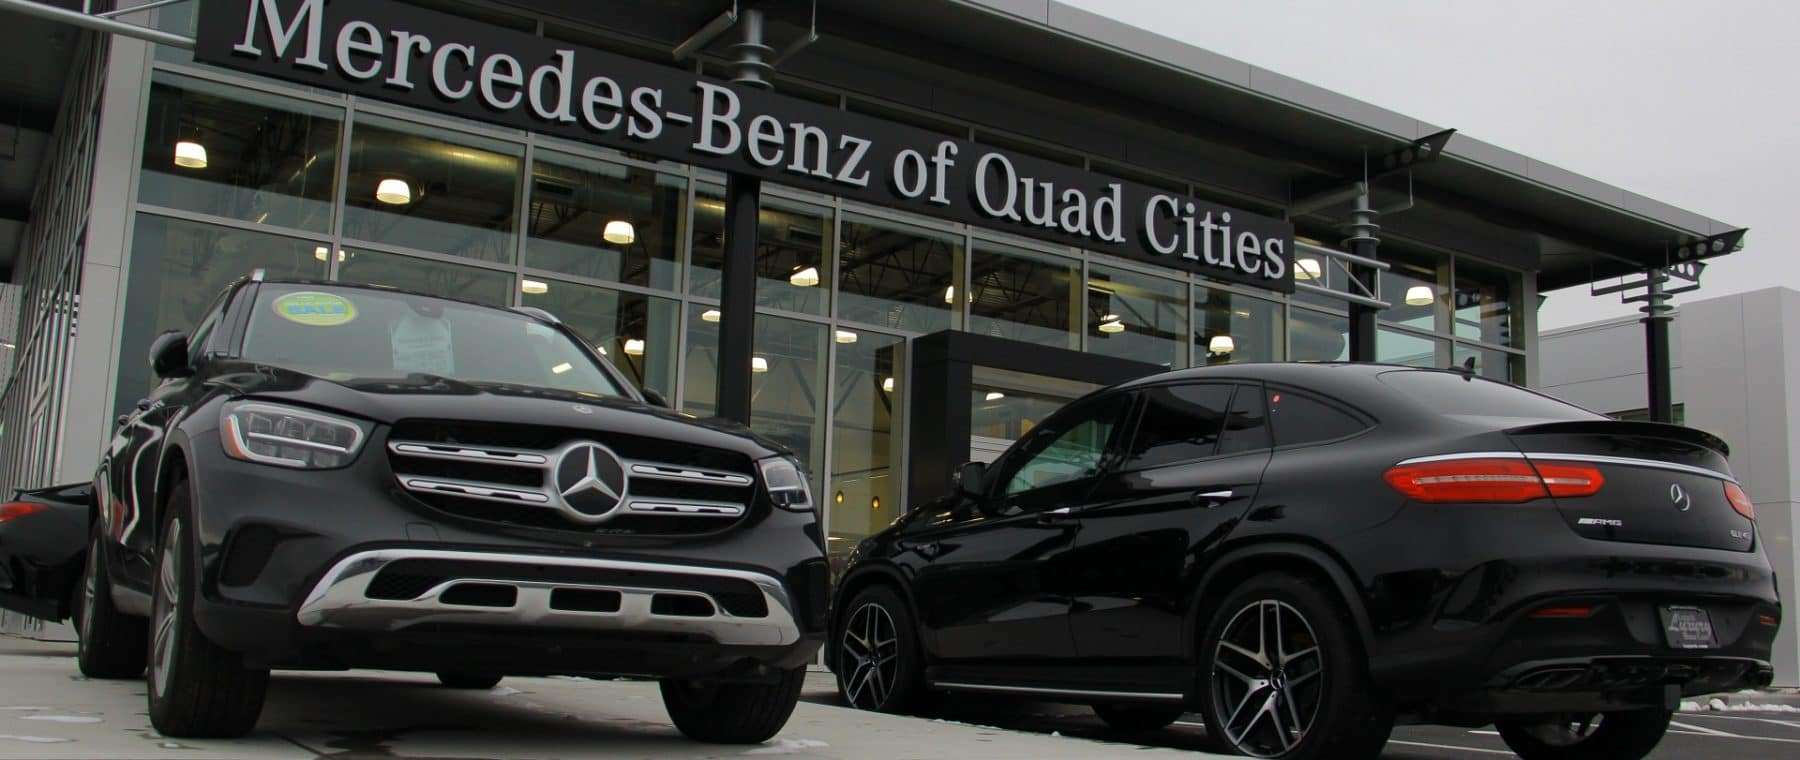 Mercedes-Benz in Davenport